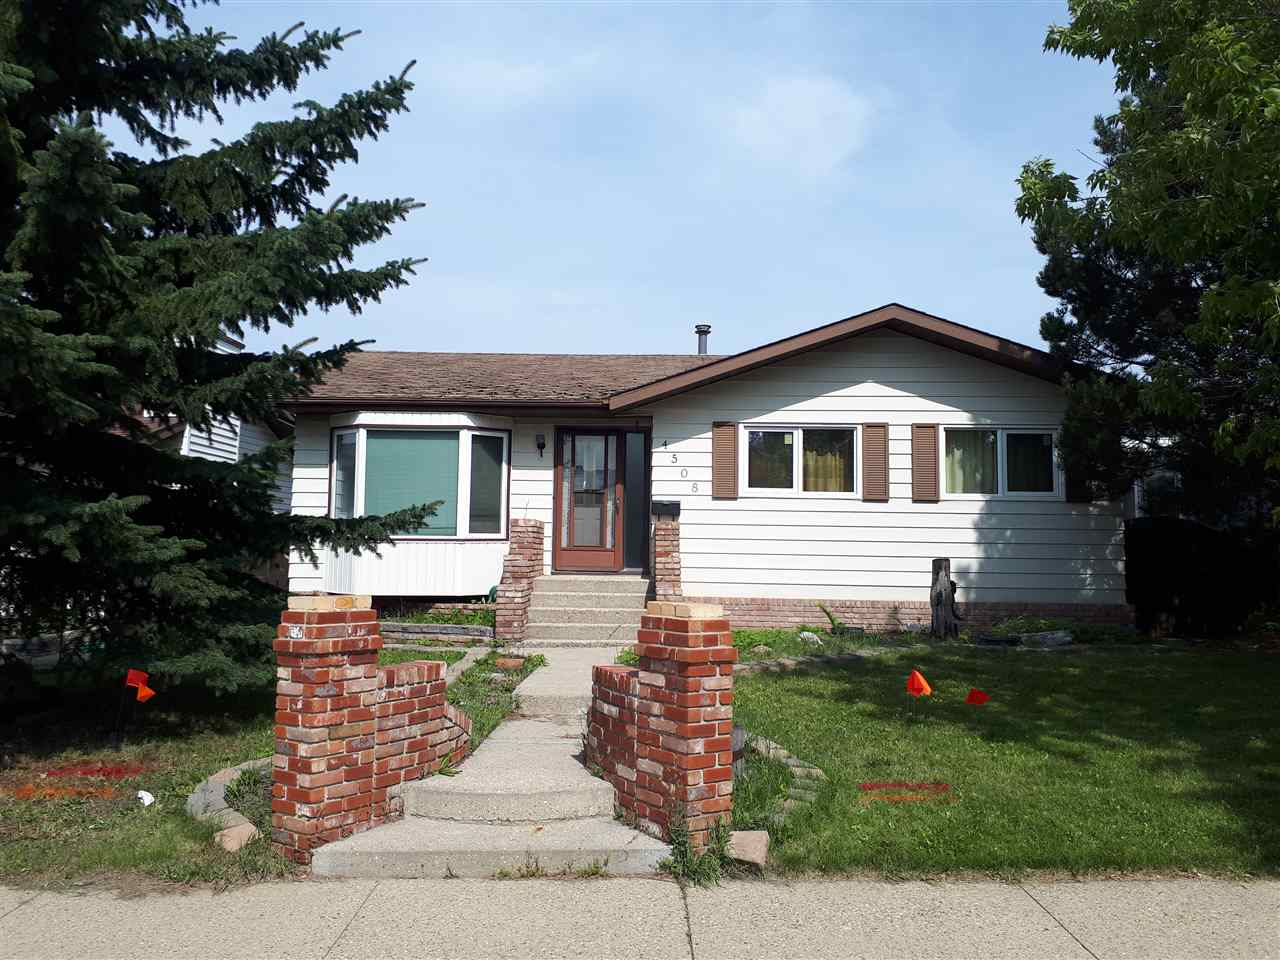 Welcome to this 1149SqFt bungalow with 3+1 bedrooms in the mature neighbourhood of Crawford Plains. This home features many upgrades including triple pane windows, upgraded attic insulation, newer high e furnace, newer kitchen countertops, hardwood floors, ceramic tile floors in kitchen & bath & newer garage doors. The main floor has a large living room with hardwood floors & bay window, large kitchen & dinette with lots of cupboard space & opens to the backyard deck. The master bedroom is complete with his & hers closets. The spacious main floor also boasts 2 additional bedrooms & 4 piece walk-thru bath with Jacuzzi tub. The basement has a bedroom with his & hers closets, family room, 3 piece bathroom, laundry room & a hobby room. The fully fenced backyard has a huge raised deck & an oversized (19.88 x 35.95) insulated car enthusiasts dream garage with 220 volt wiring, workshop area & back alley access.  Complete with a parking pad for an RV this house is just waiting for your family to call home!